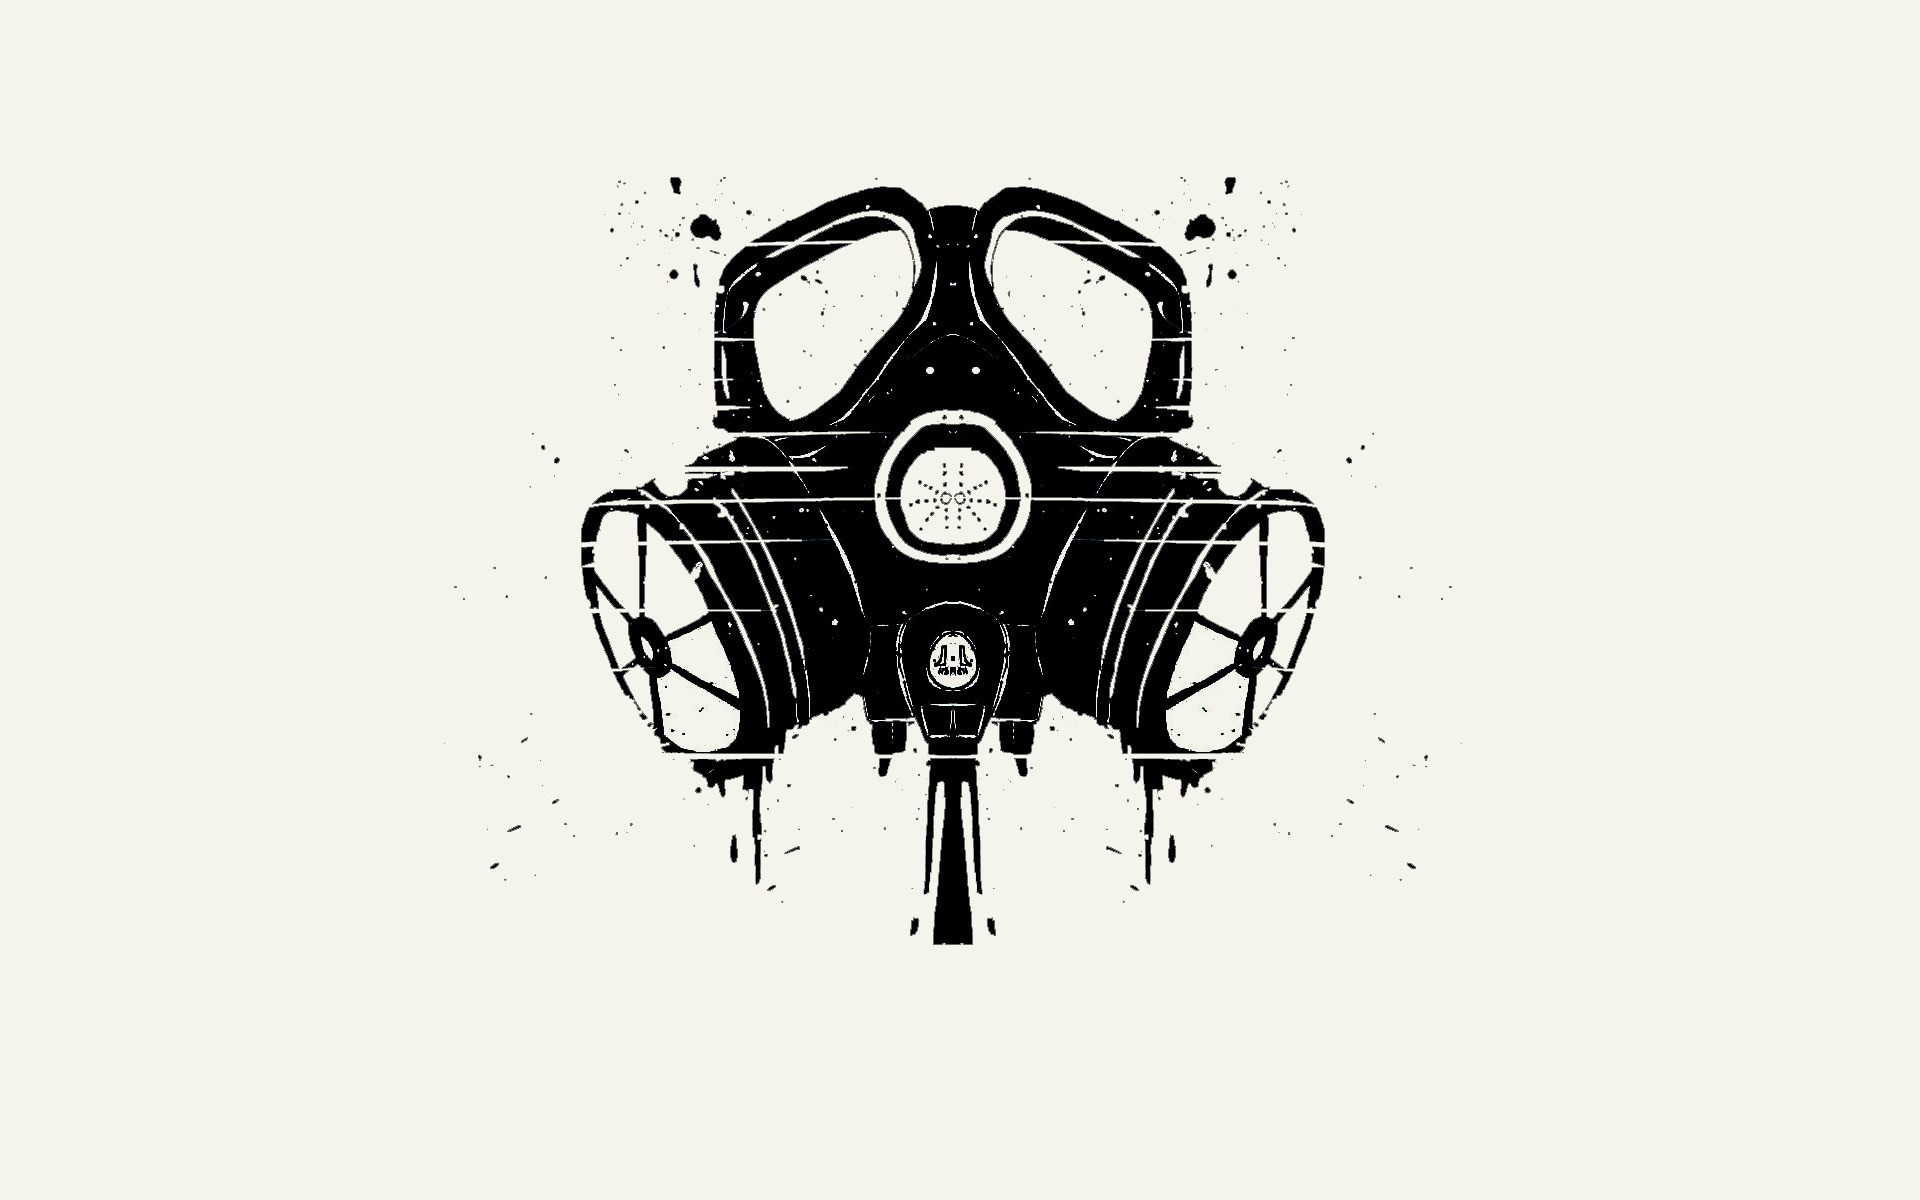 1920x1200 gas mask hd wallpaper (Fletch Hardman 1920 x 1200) | sharovarka | Pinterest